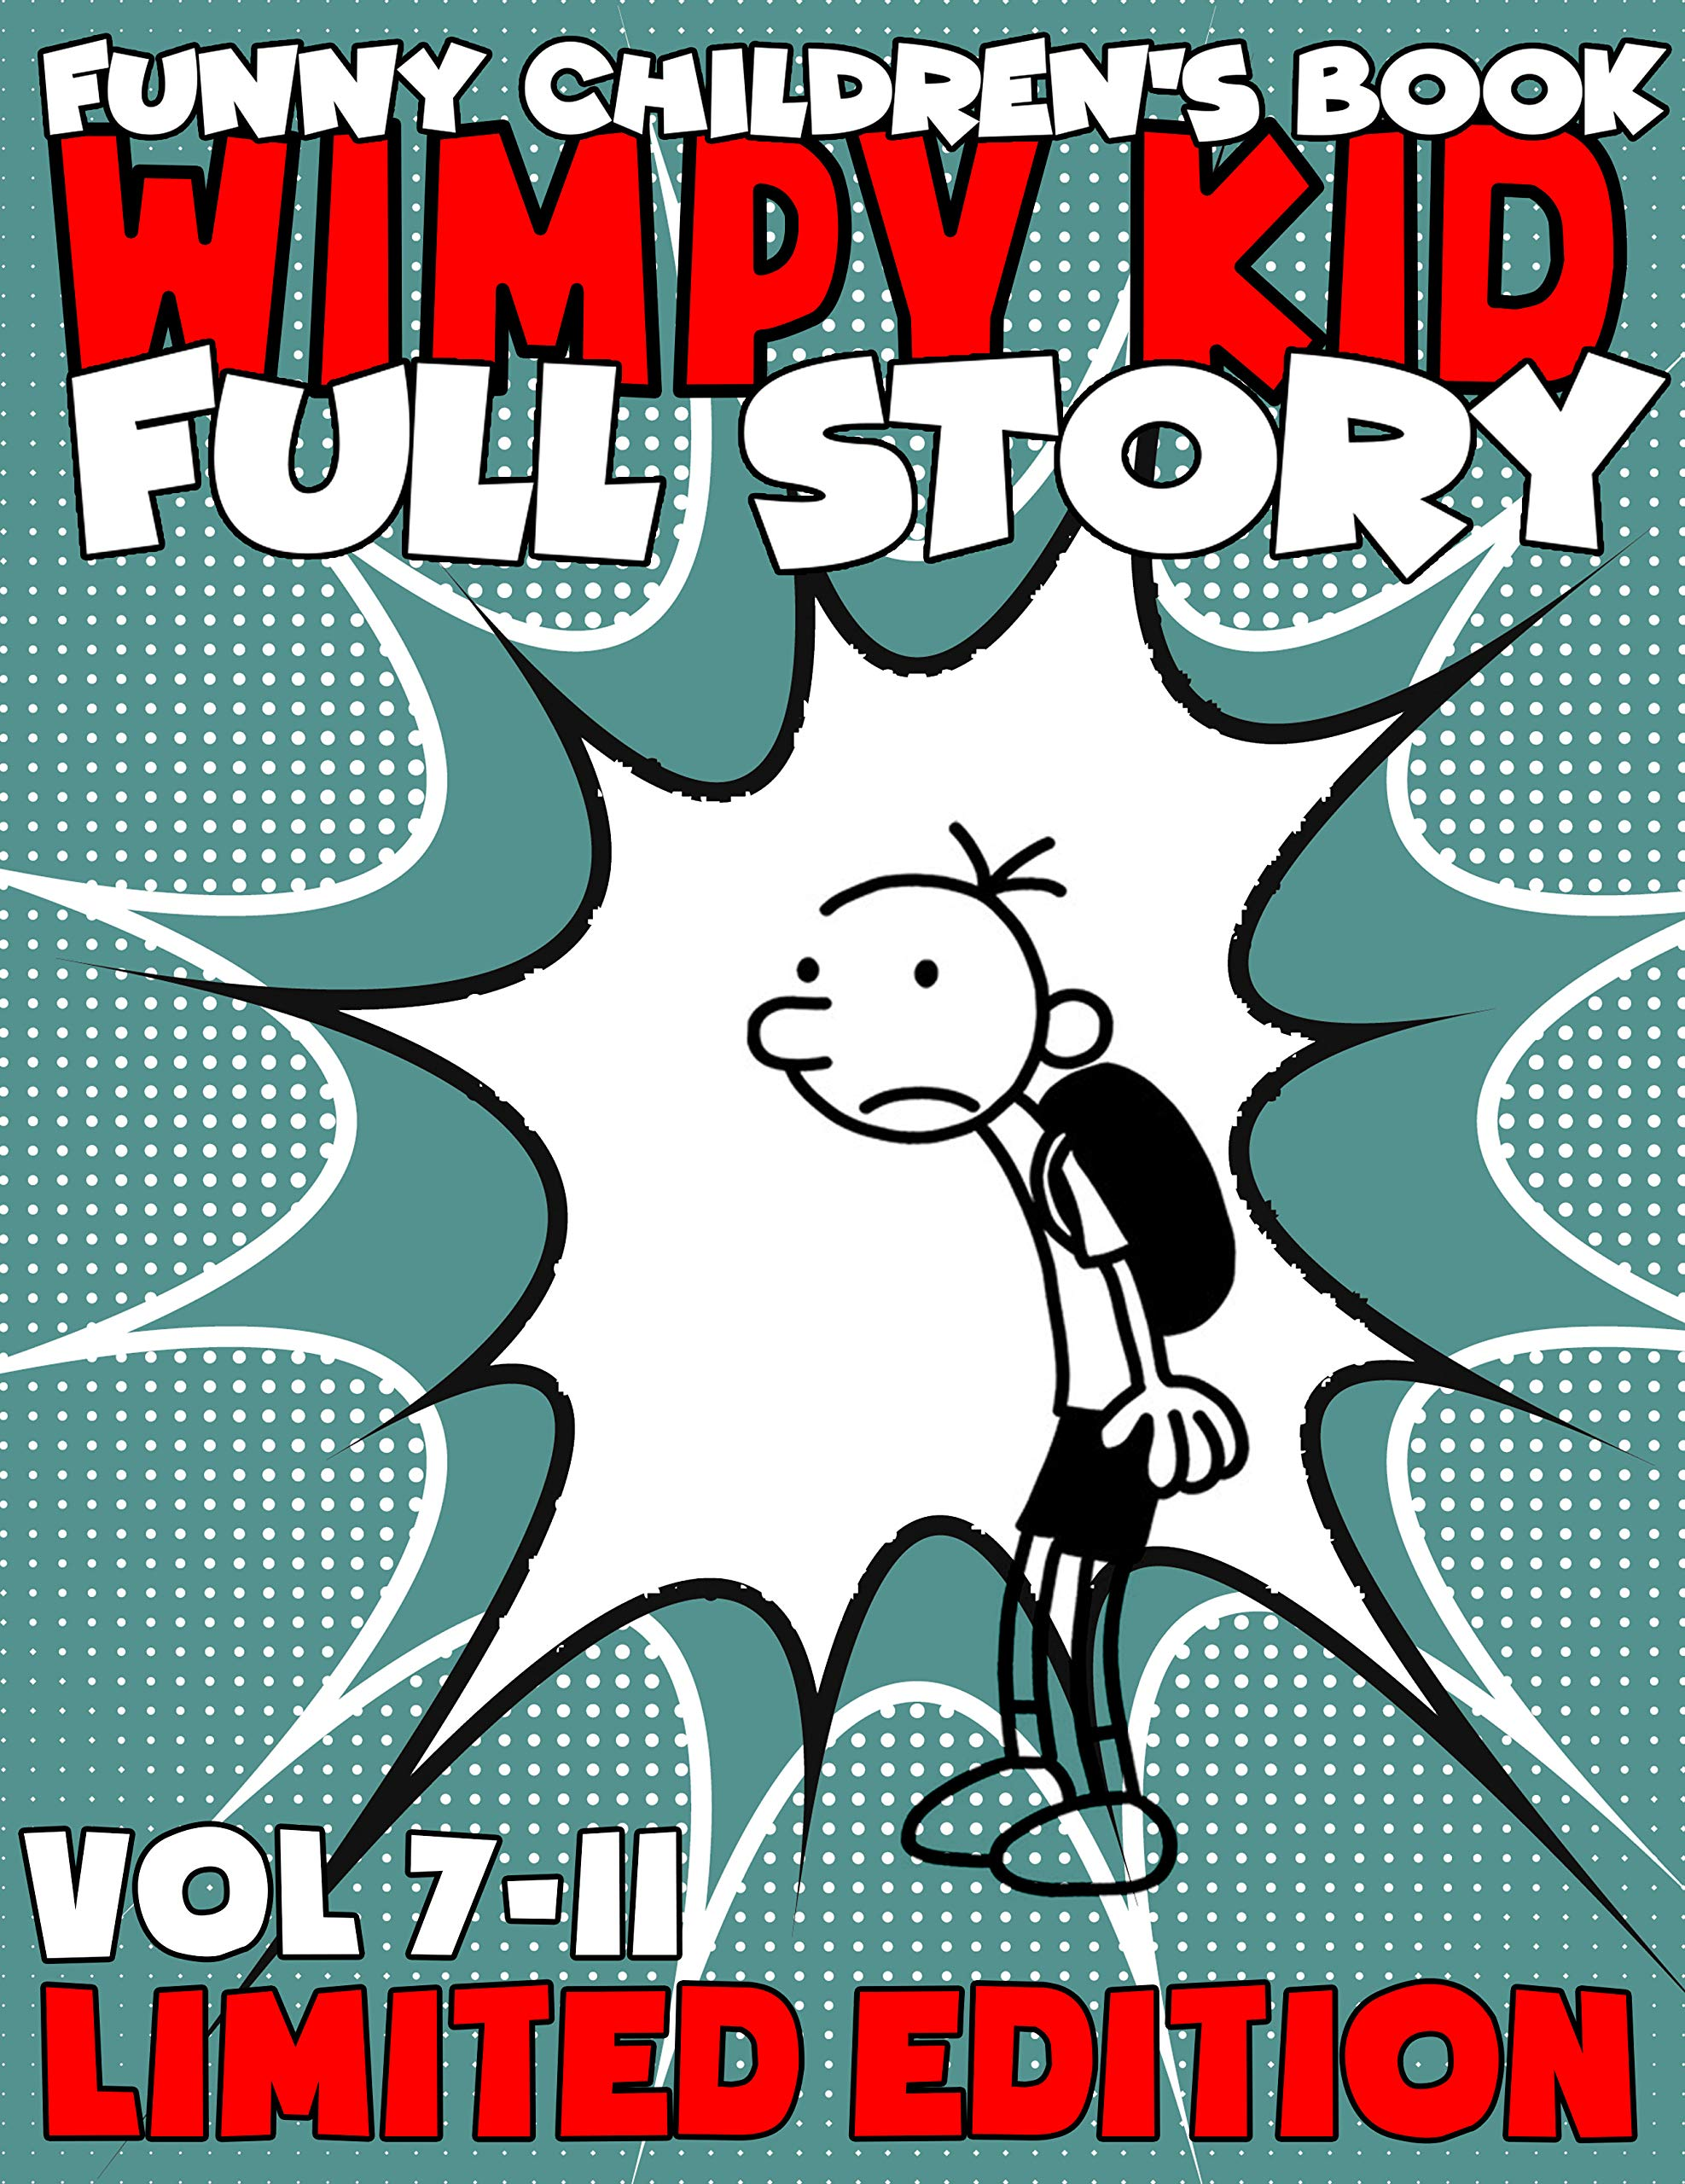 The Best Childrens Books Wimpy Kid Limited Edition Full Series: Complete Edition Vol 7-11